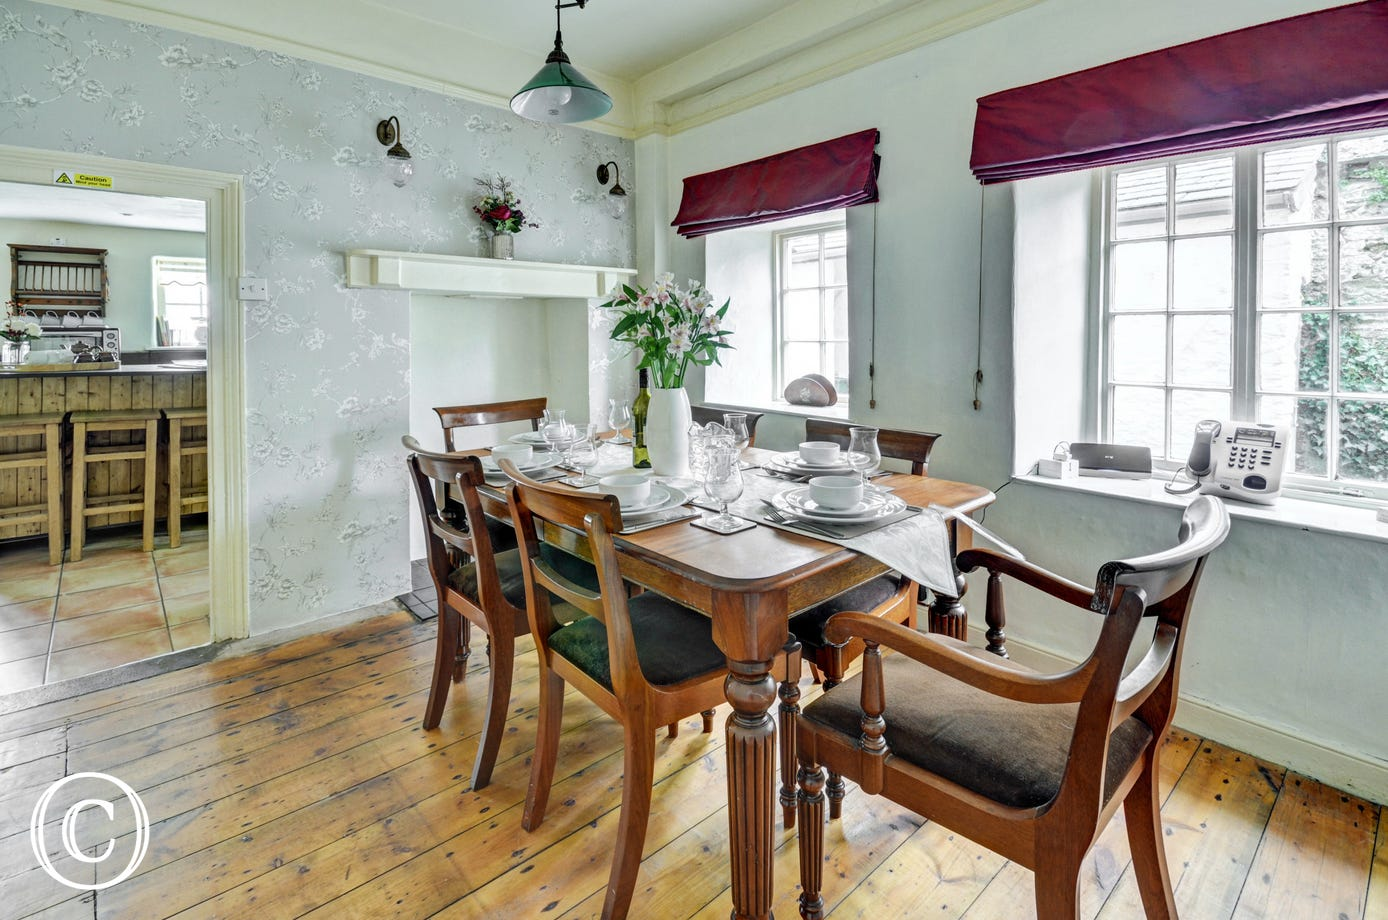 The separate dining room provides a space for formal or informal dining